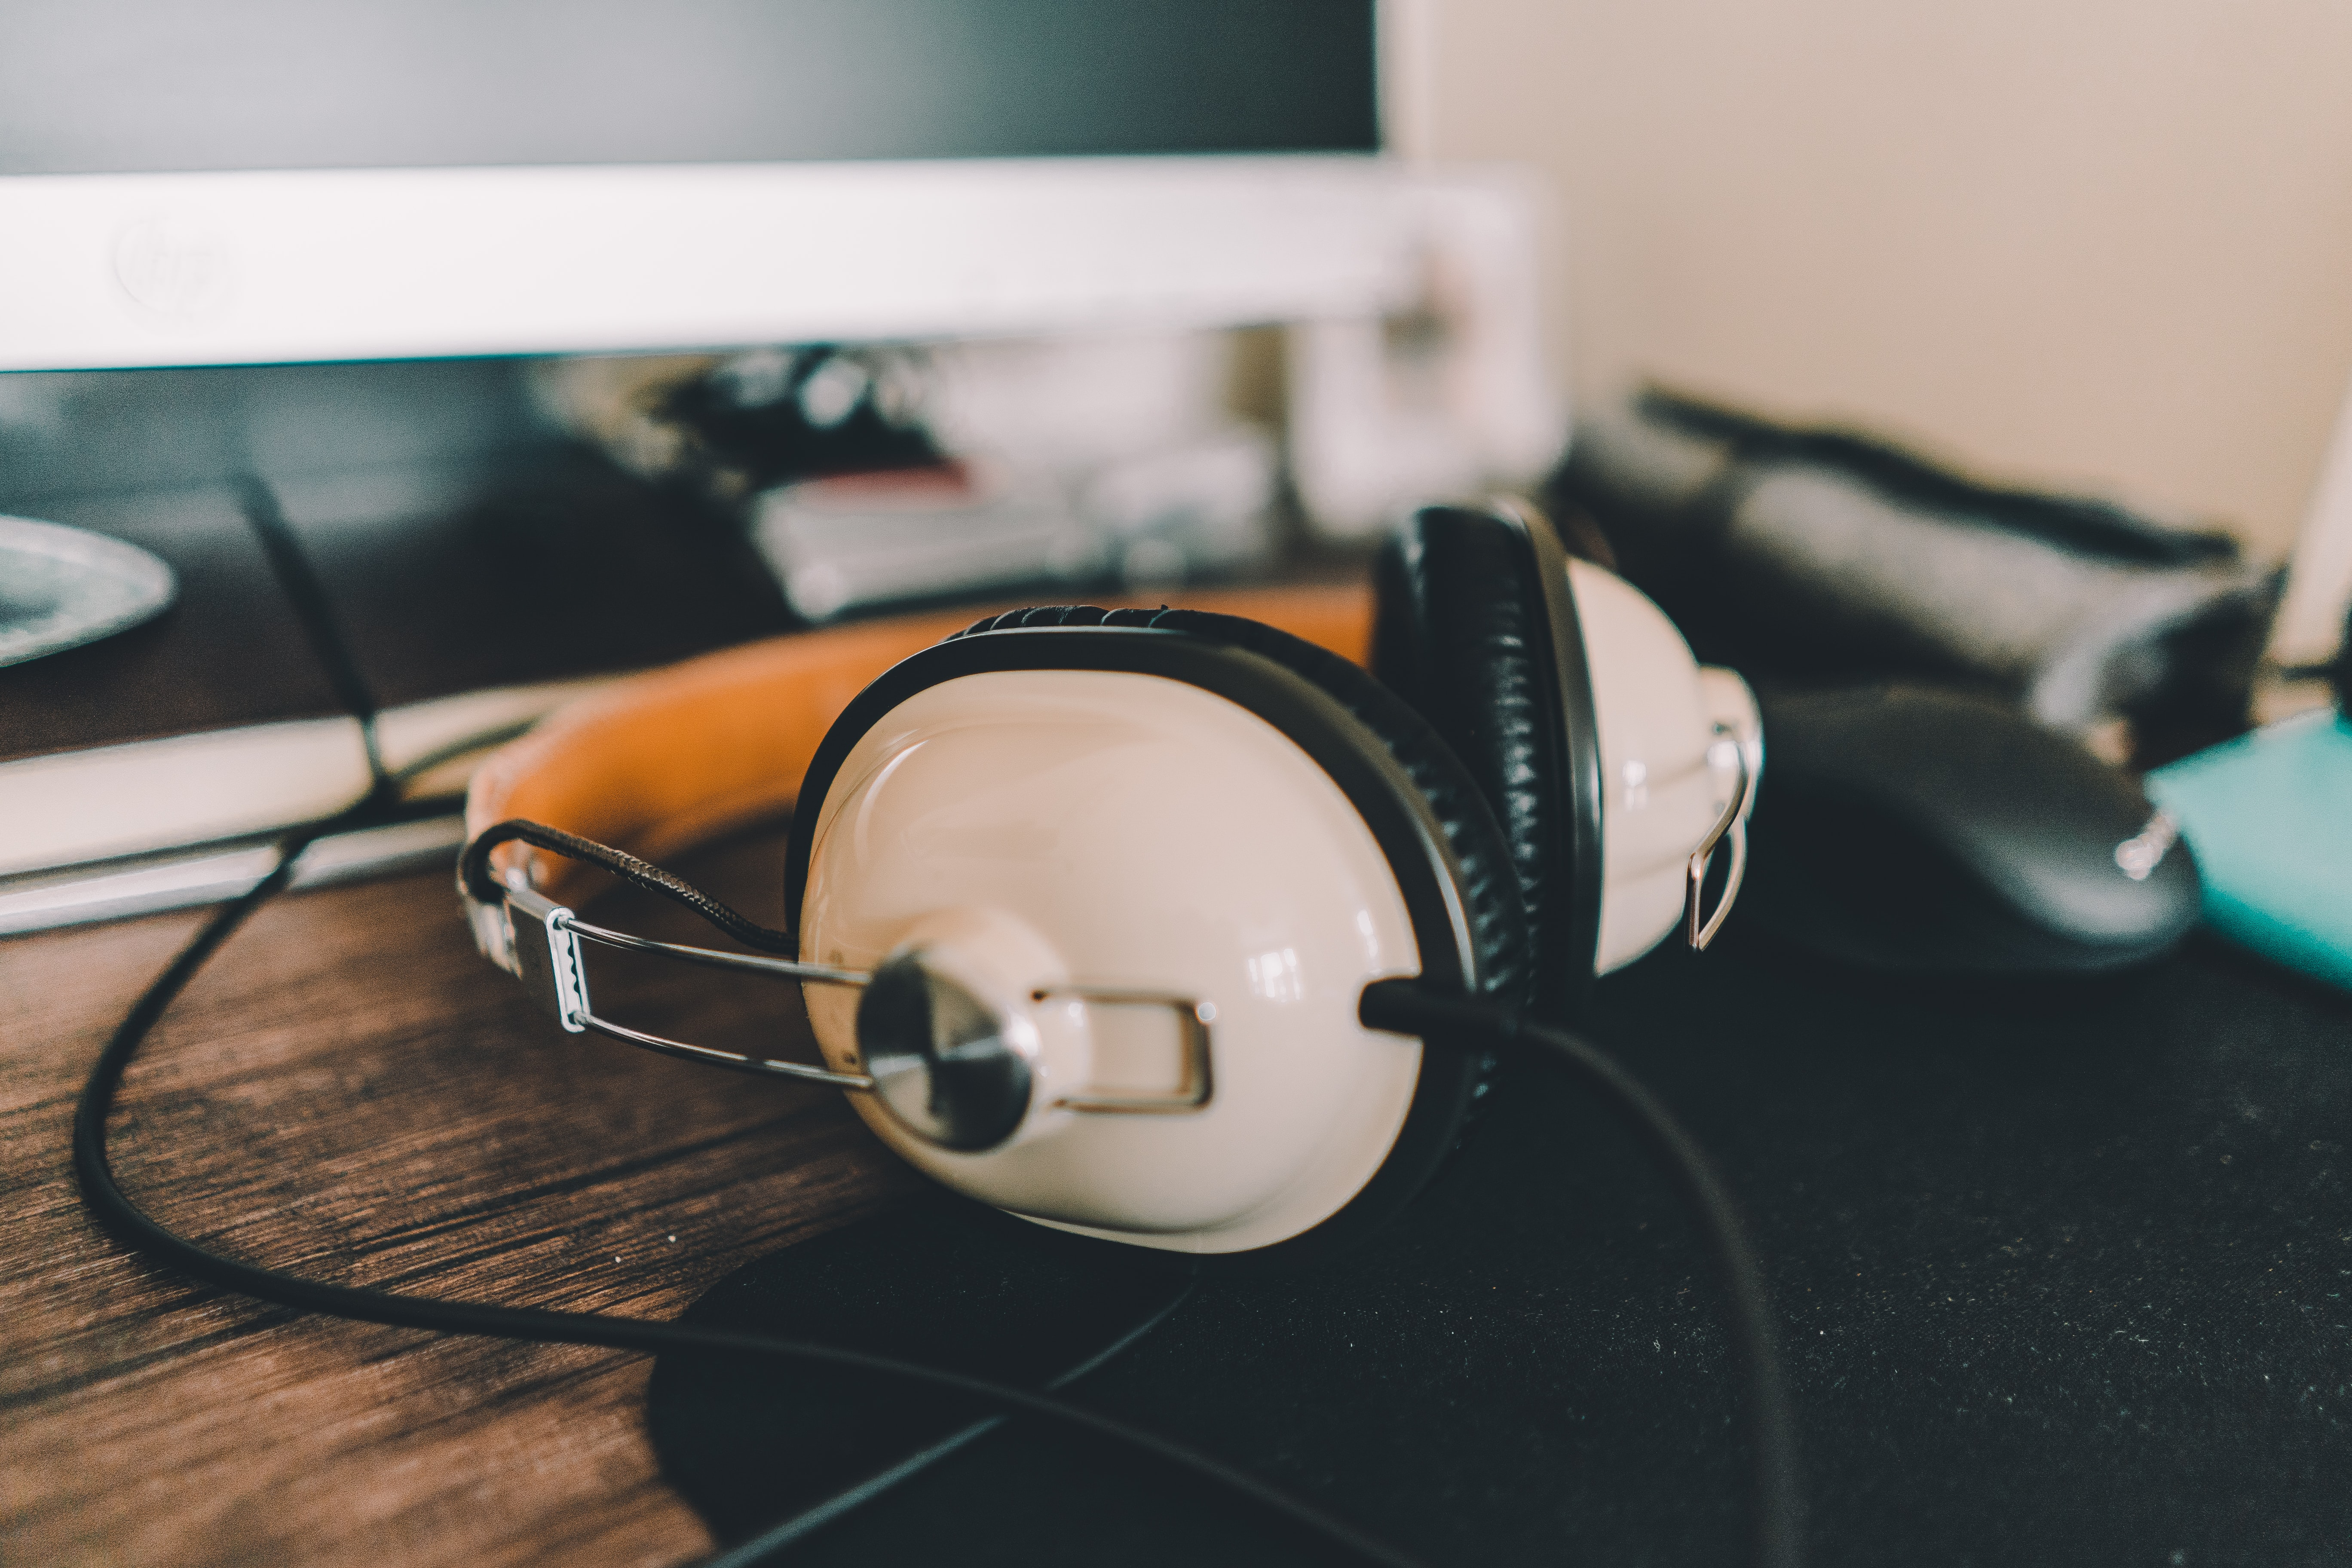 white and black corded headphones on brown wooden shelf